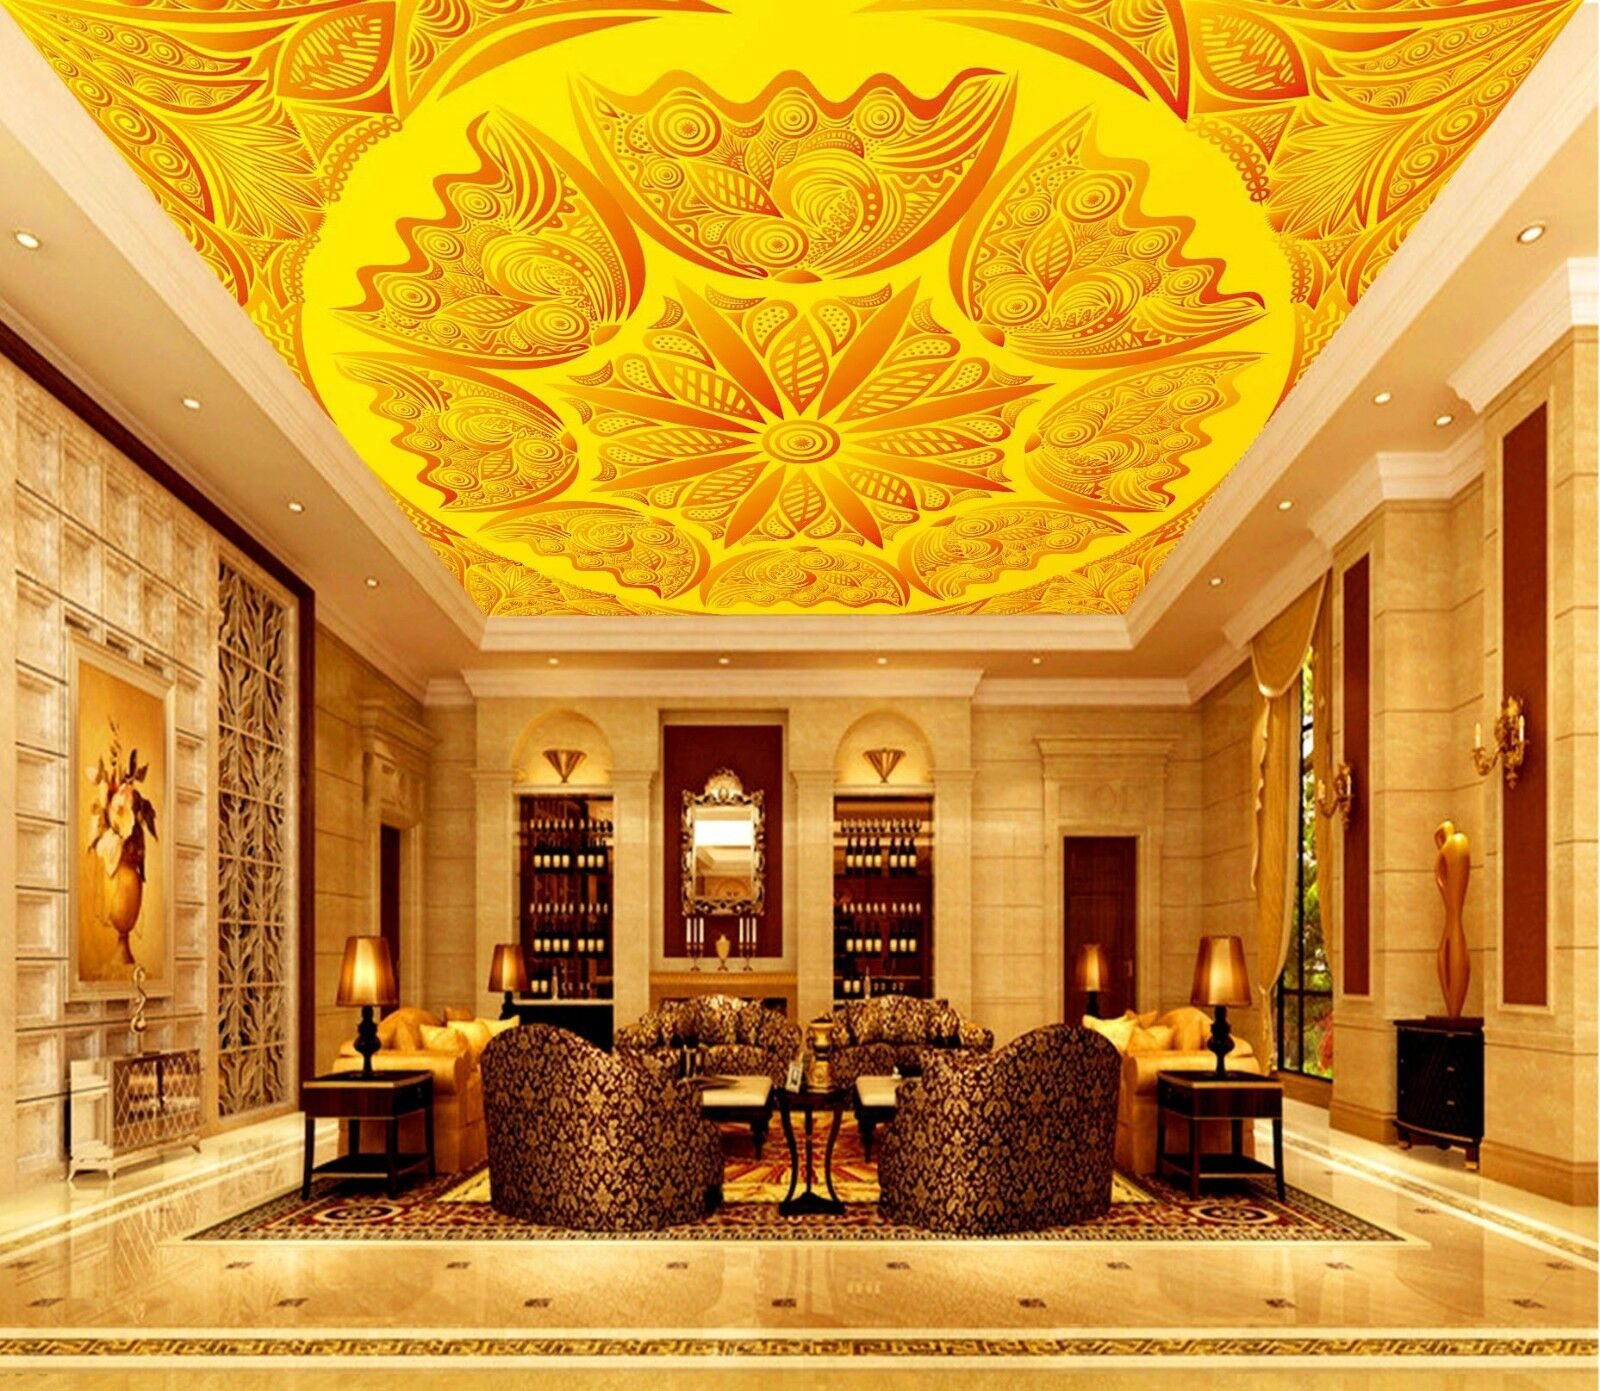 3D gold 46 Ceiling WallPaper Murals Wall Print Decal Deco AJ WALLPAPER AU